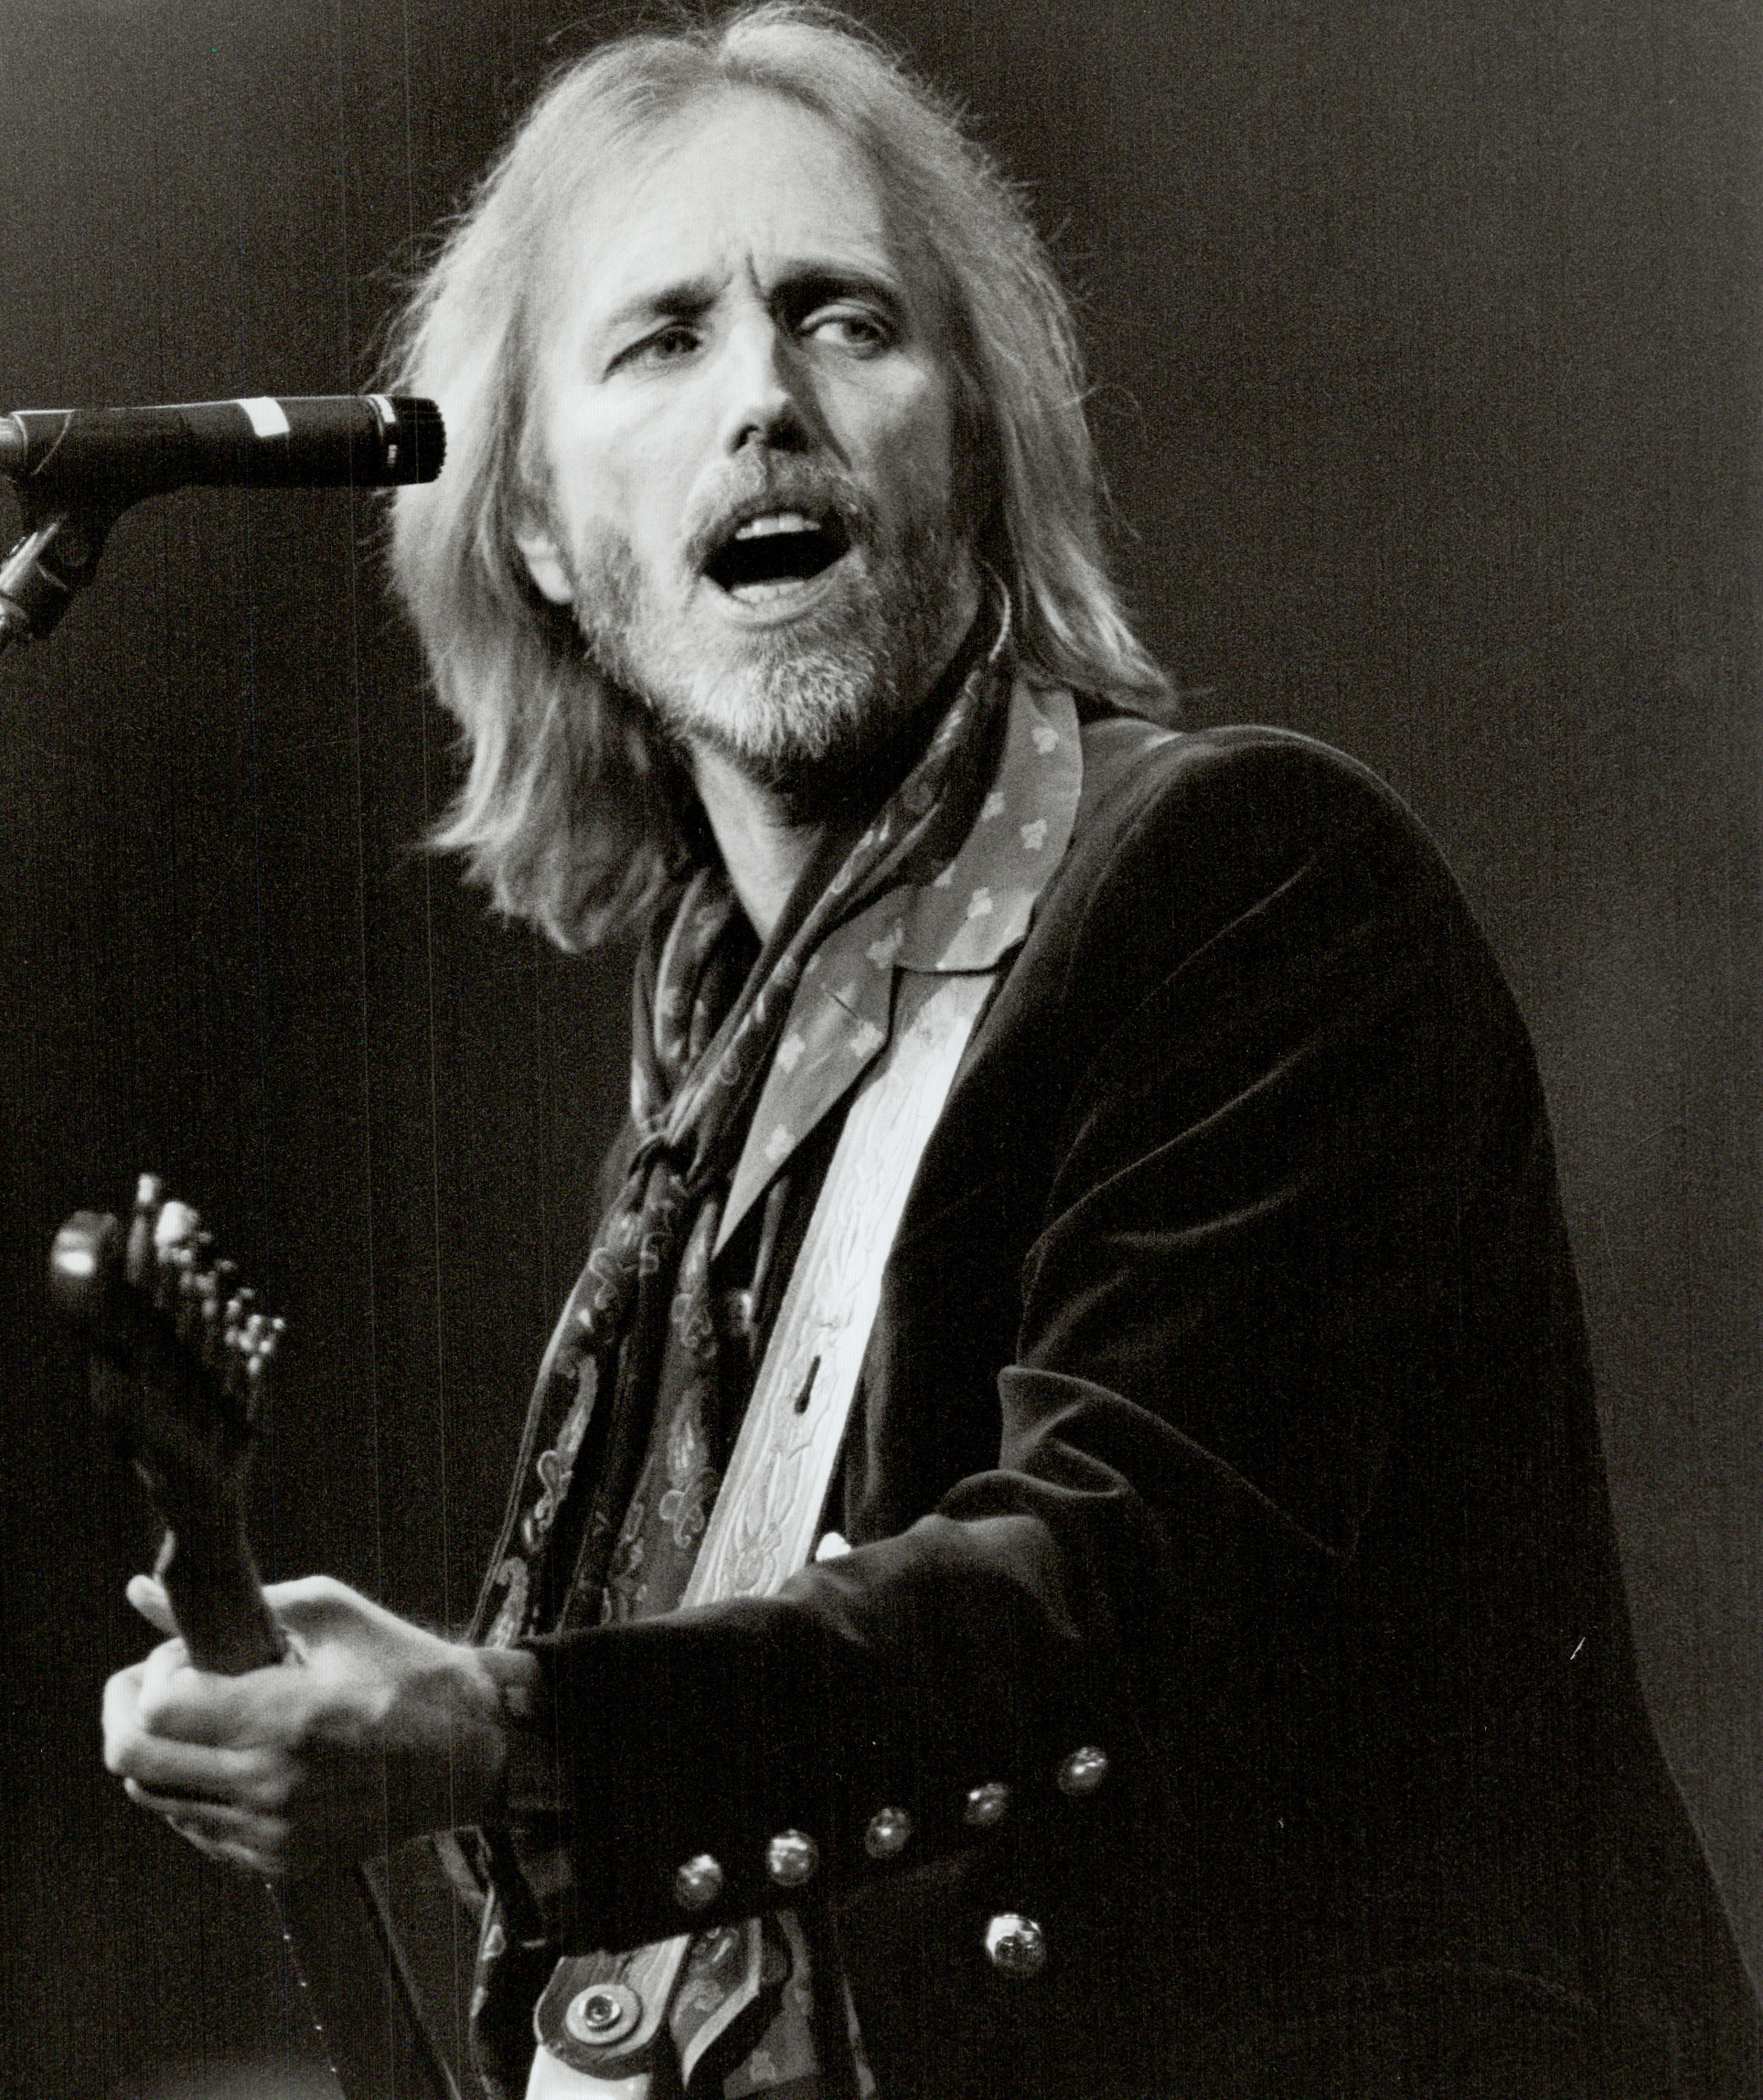 tom petty pointless road - HD1928×2296